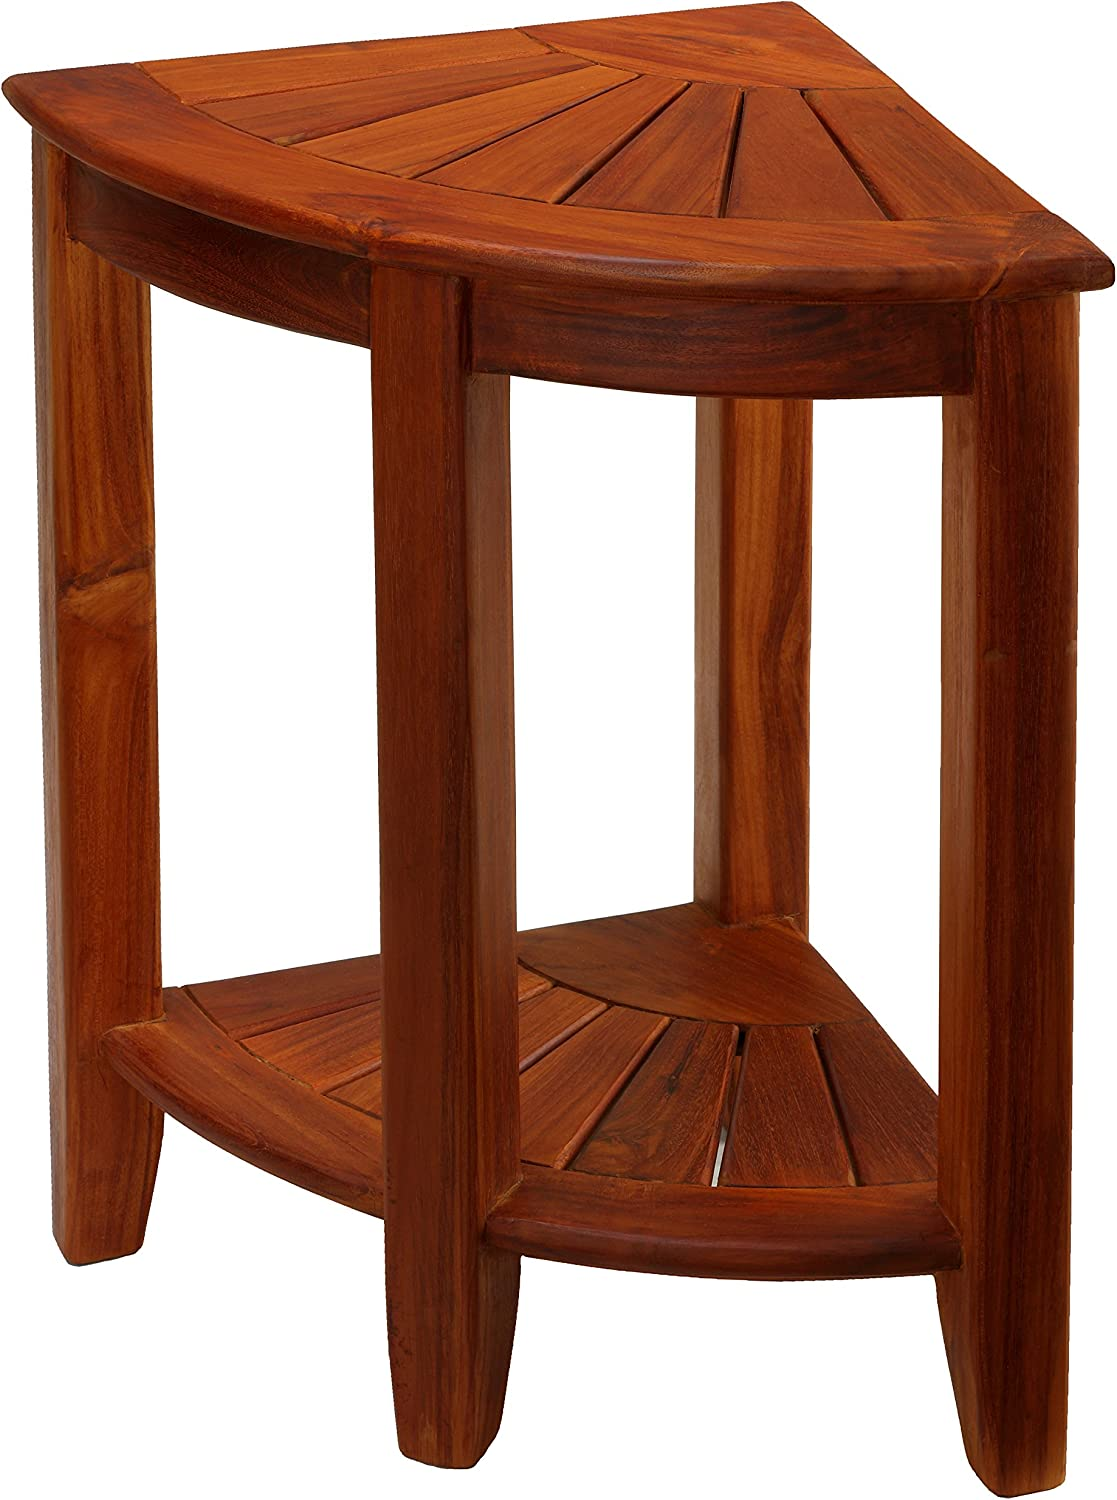 "Bare DÉCor Elana Corner Shower Stool, 24"", Solid Teak Wood"